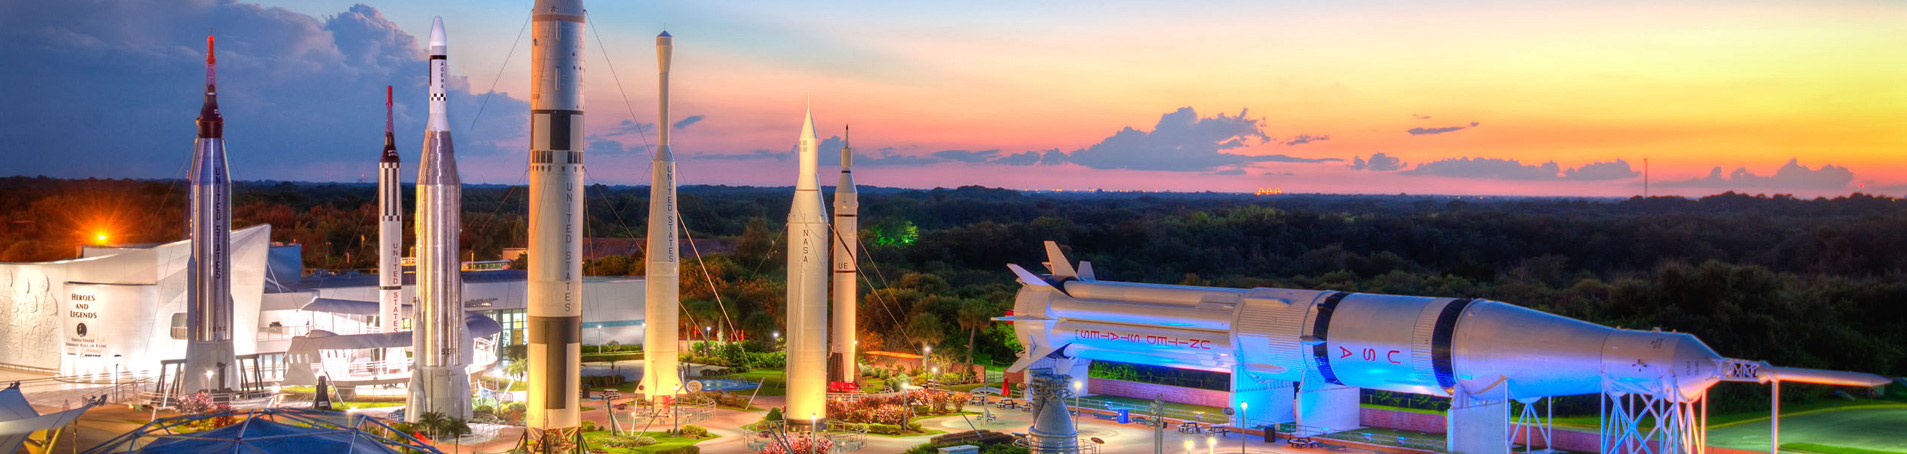 Kennedy Space Center Buy Tickets To Kennedy Space Center Visitor Complex